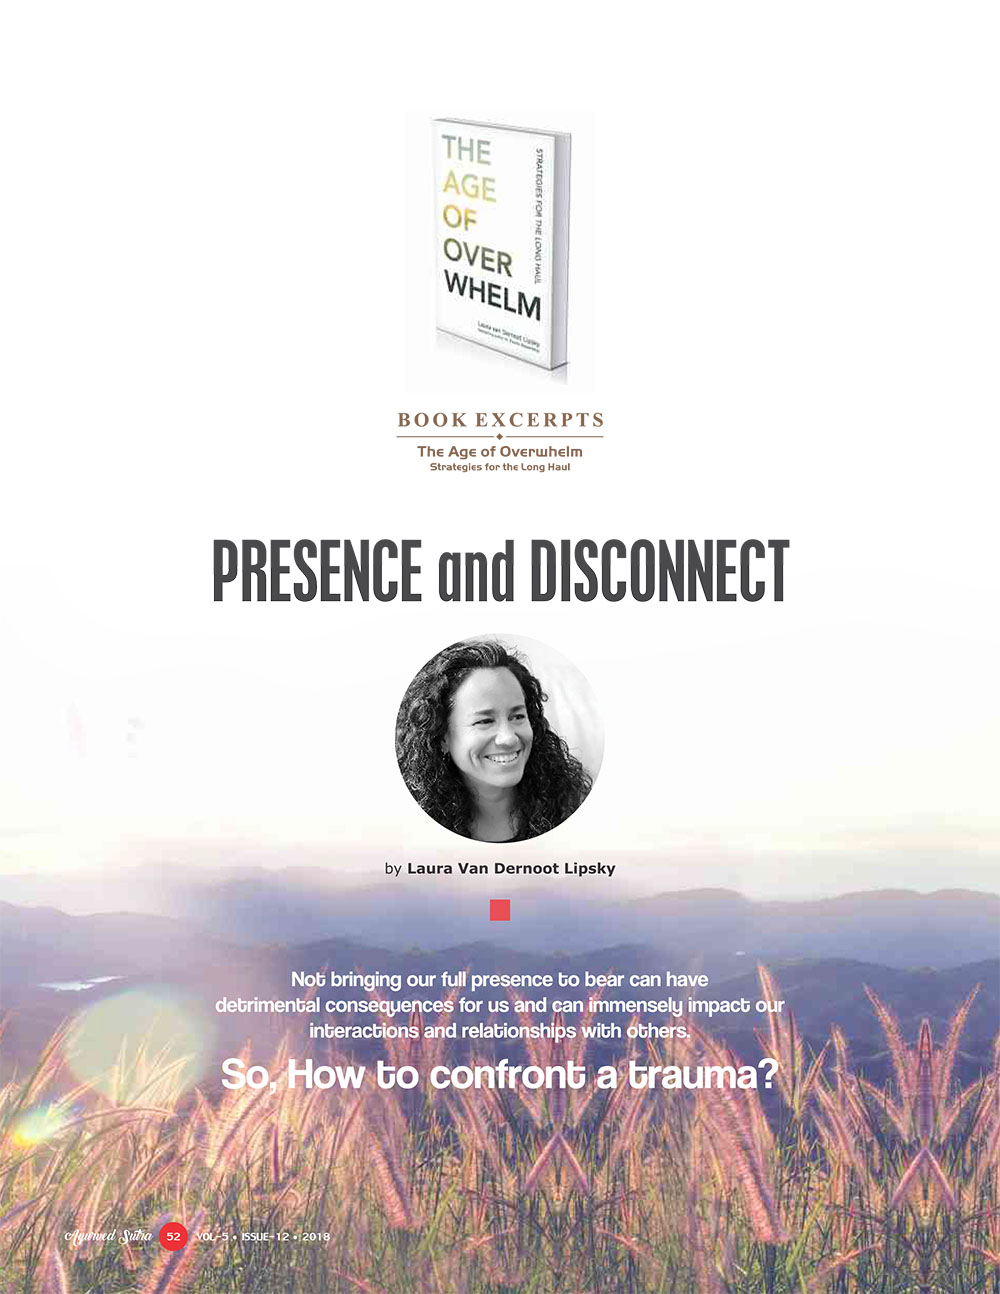 Ayurvedsutra Vol 05 issue 12 54 - PRESENCE and DISCONNECT